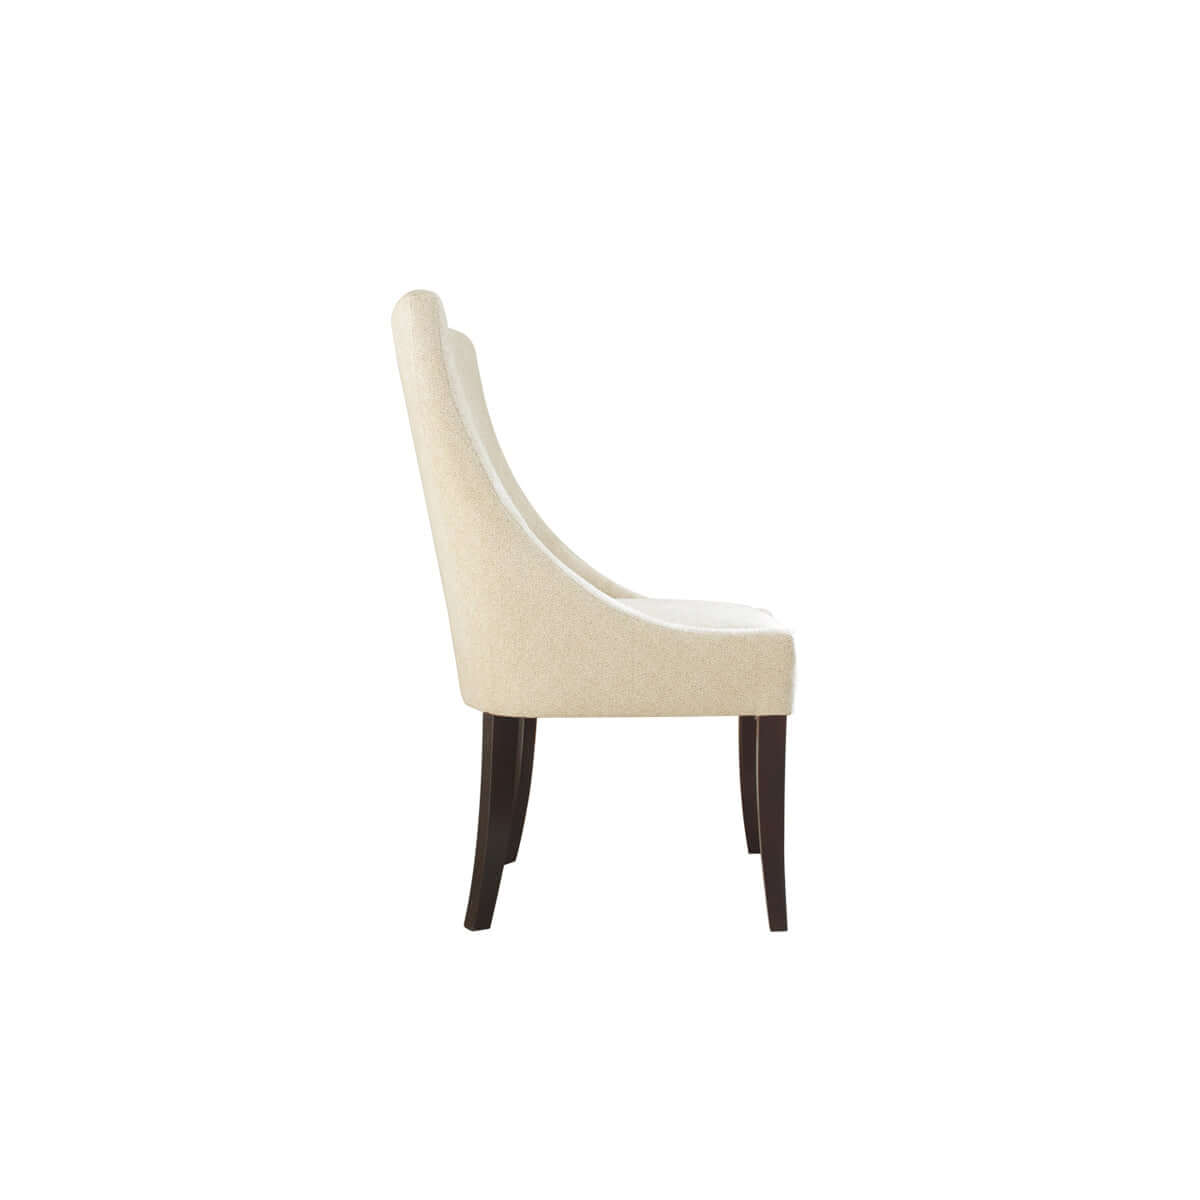 side view classy wood leg dining chair